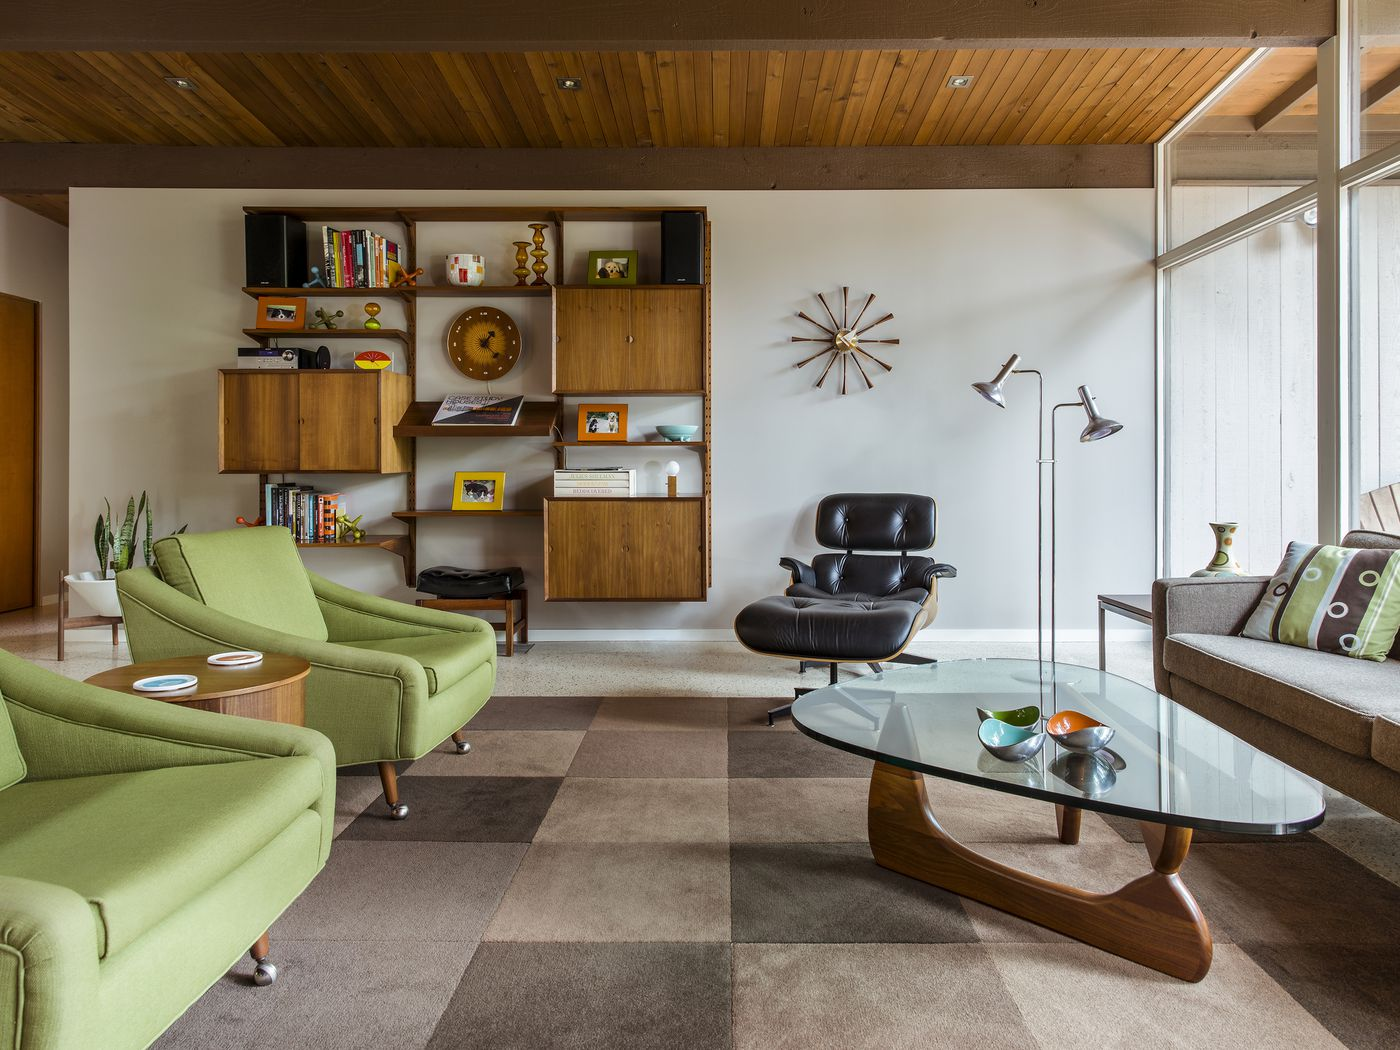 Midcentury Modern Furniture Where To Buy It Curbed This can be very helpful to those looking to save hard earned cash. midcentury modern furniture where to